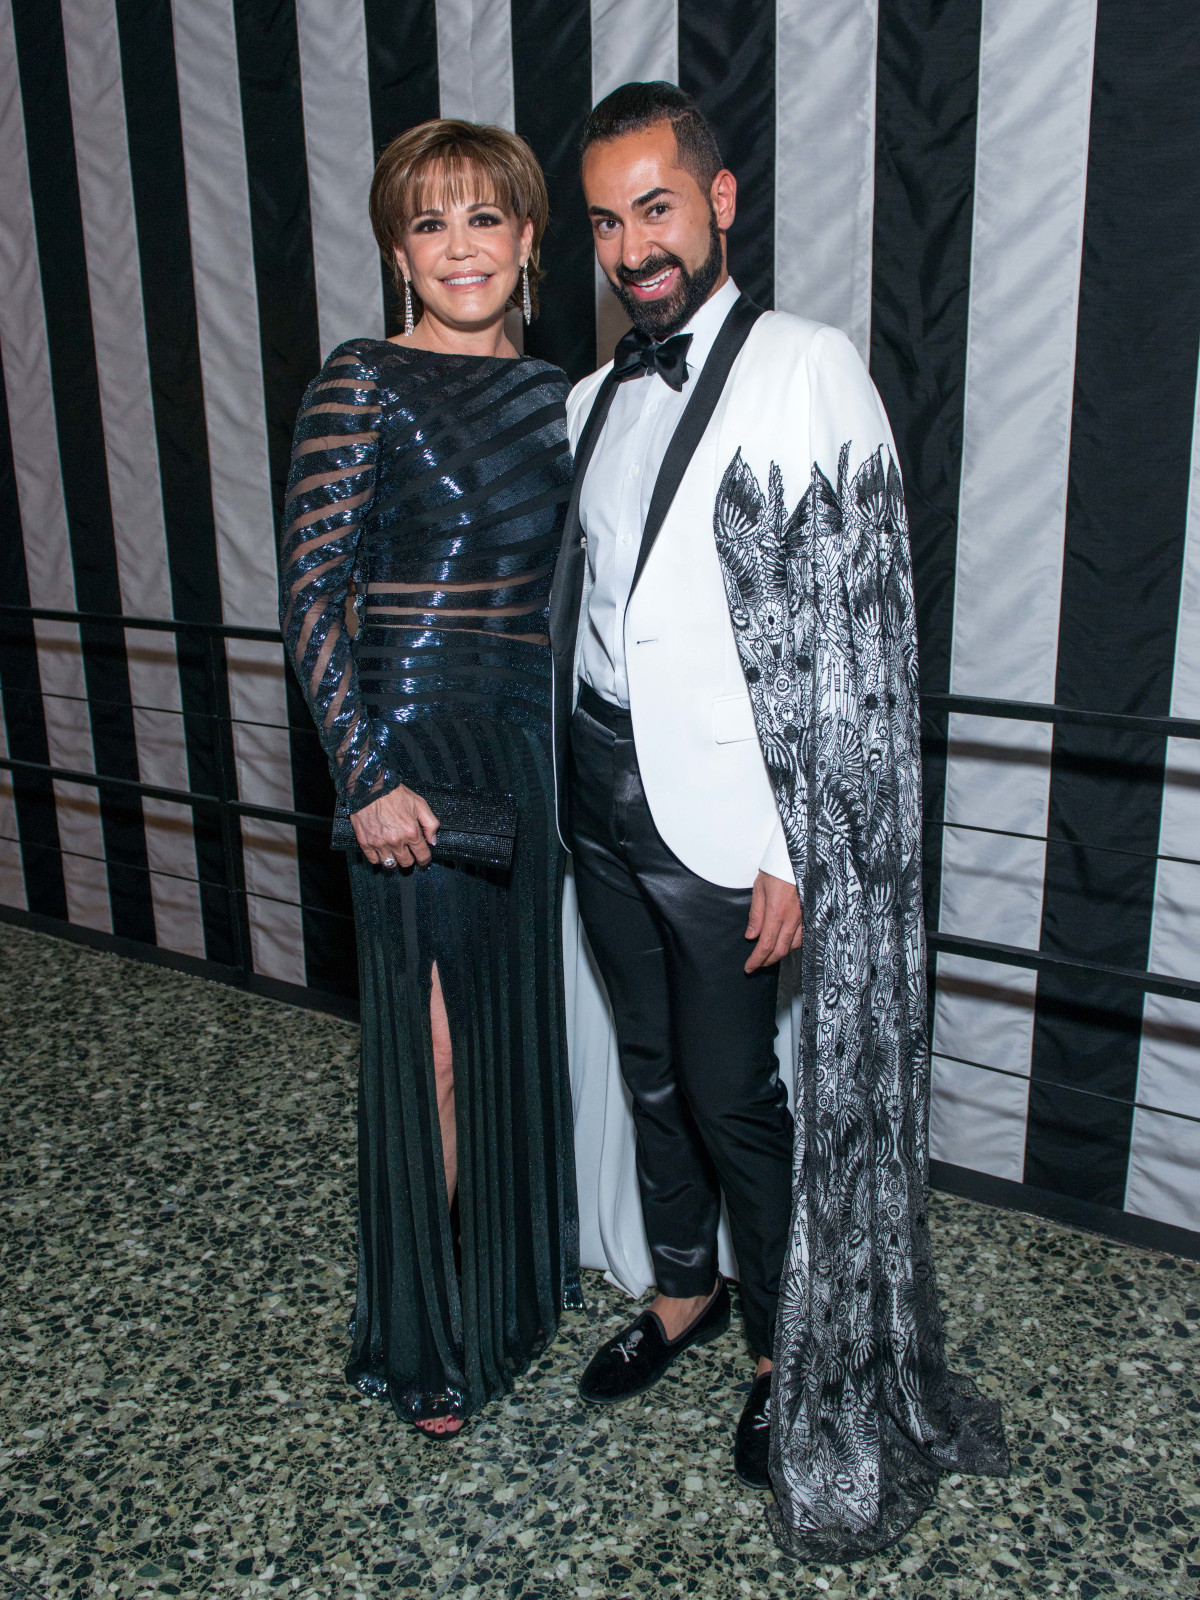 News, Shelby, MFAH gala gowns, Oct. 2015 Hallie Vanderhider in Pamela Roland, Fady Armanious in Tadashi